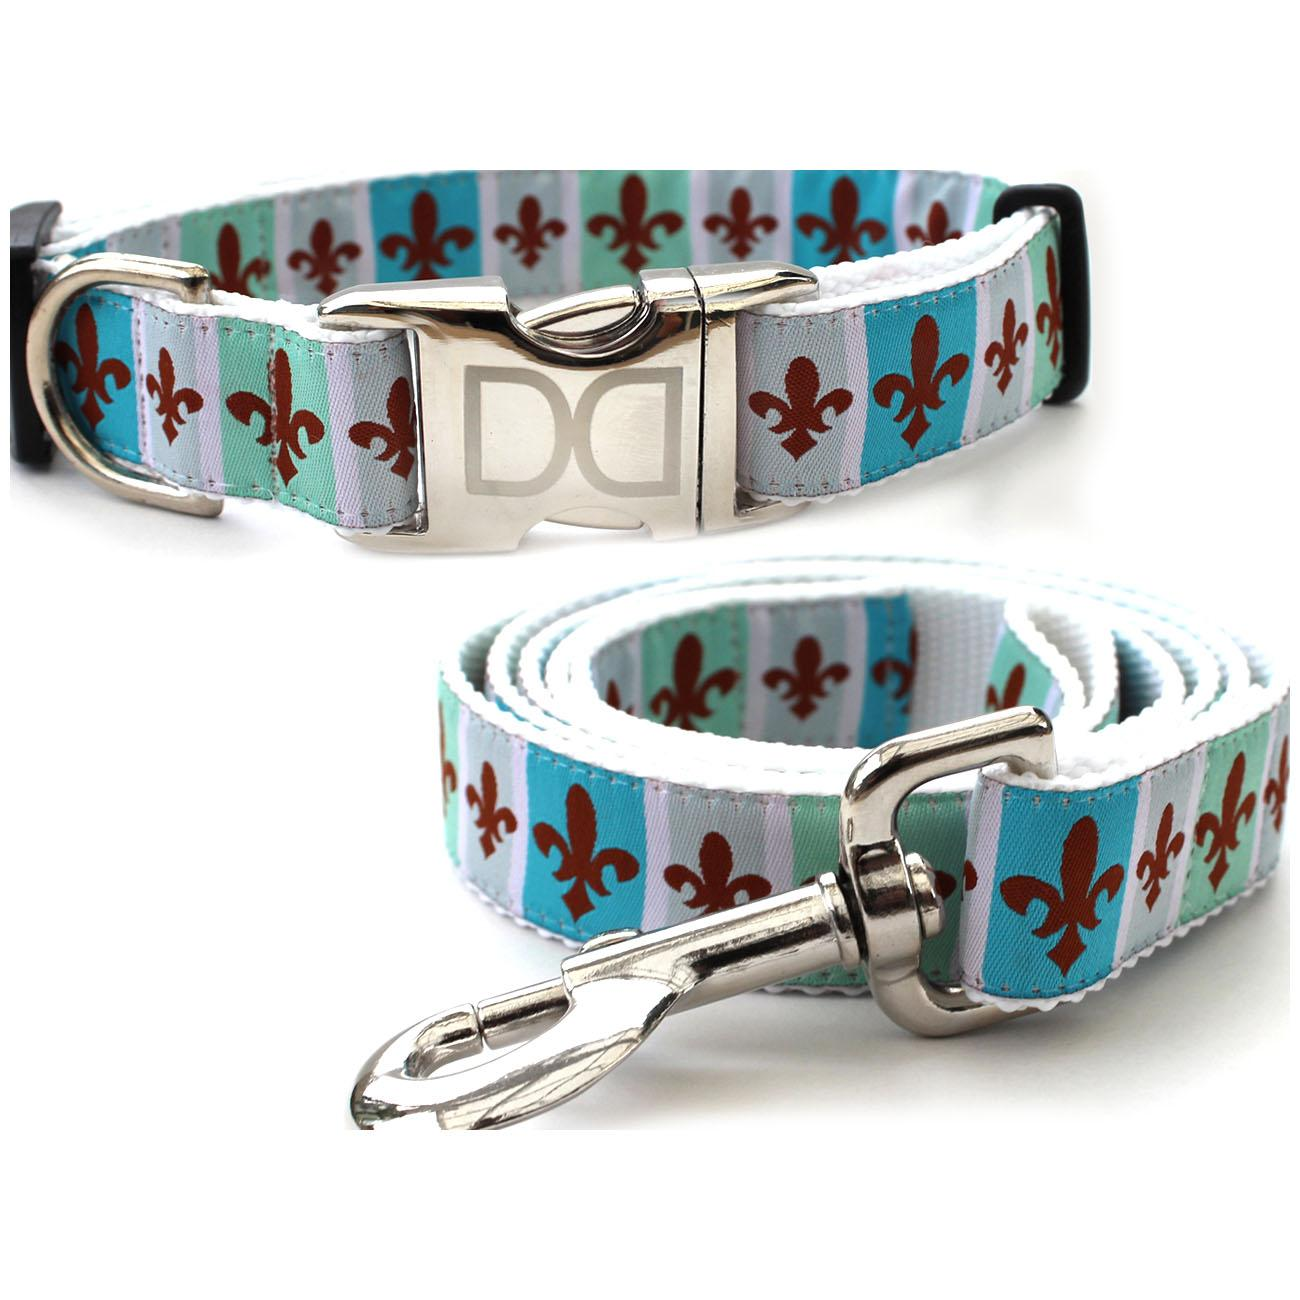 French Quarter Dog Collar and Leash Set by Diva Dog